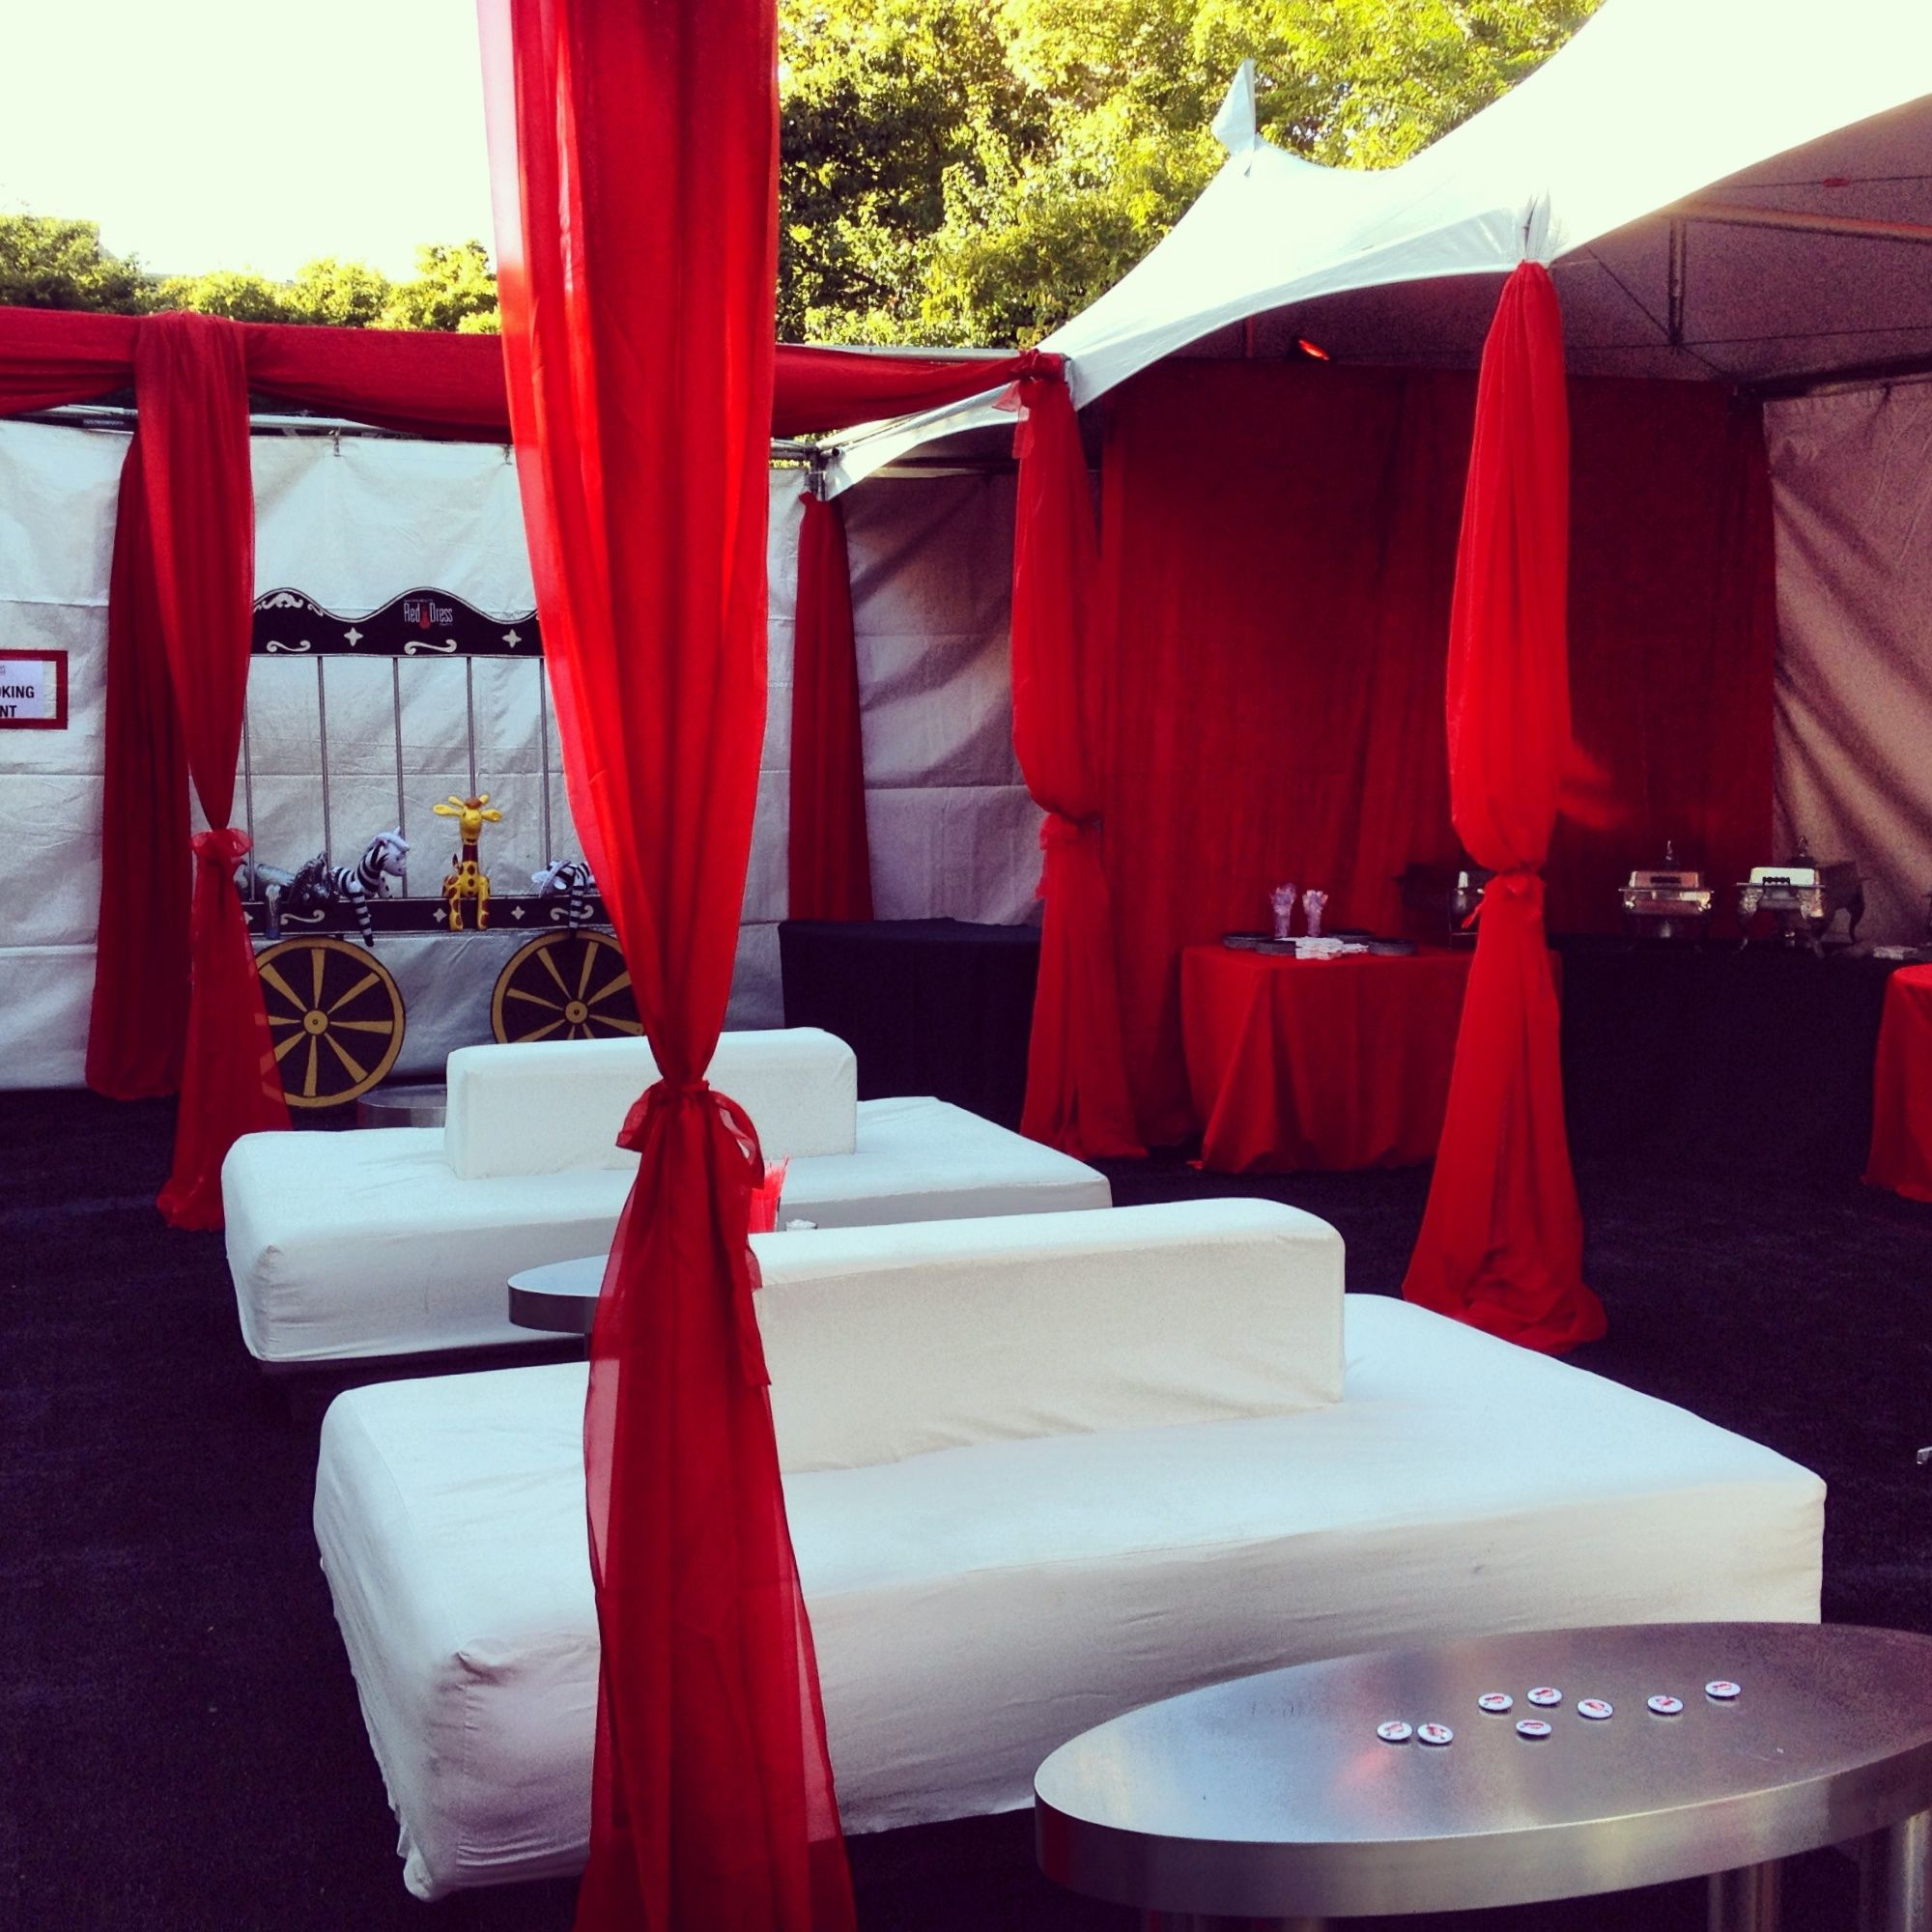 festival tents situated in a u shape with various decor and lounge furniture - U Shape Canopy Decorating